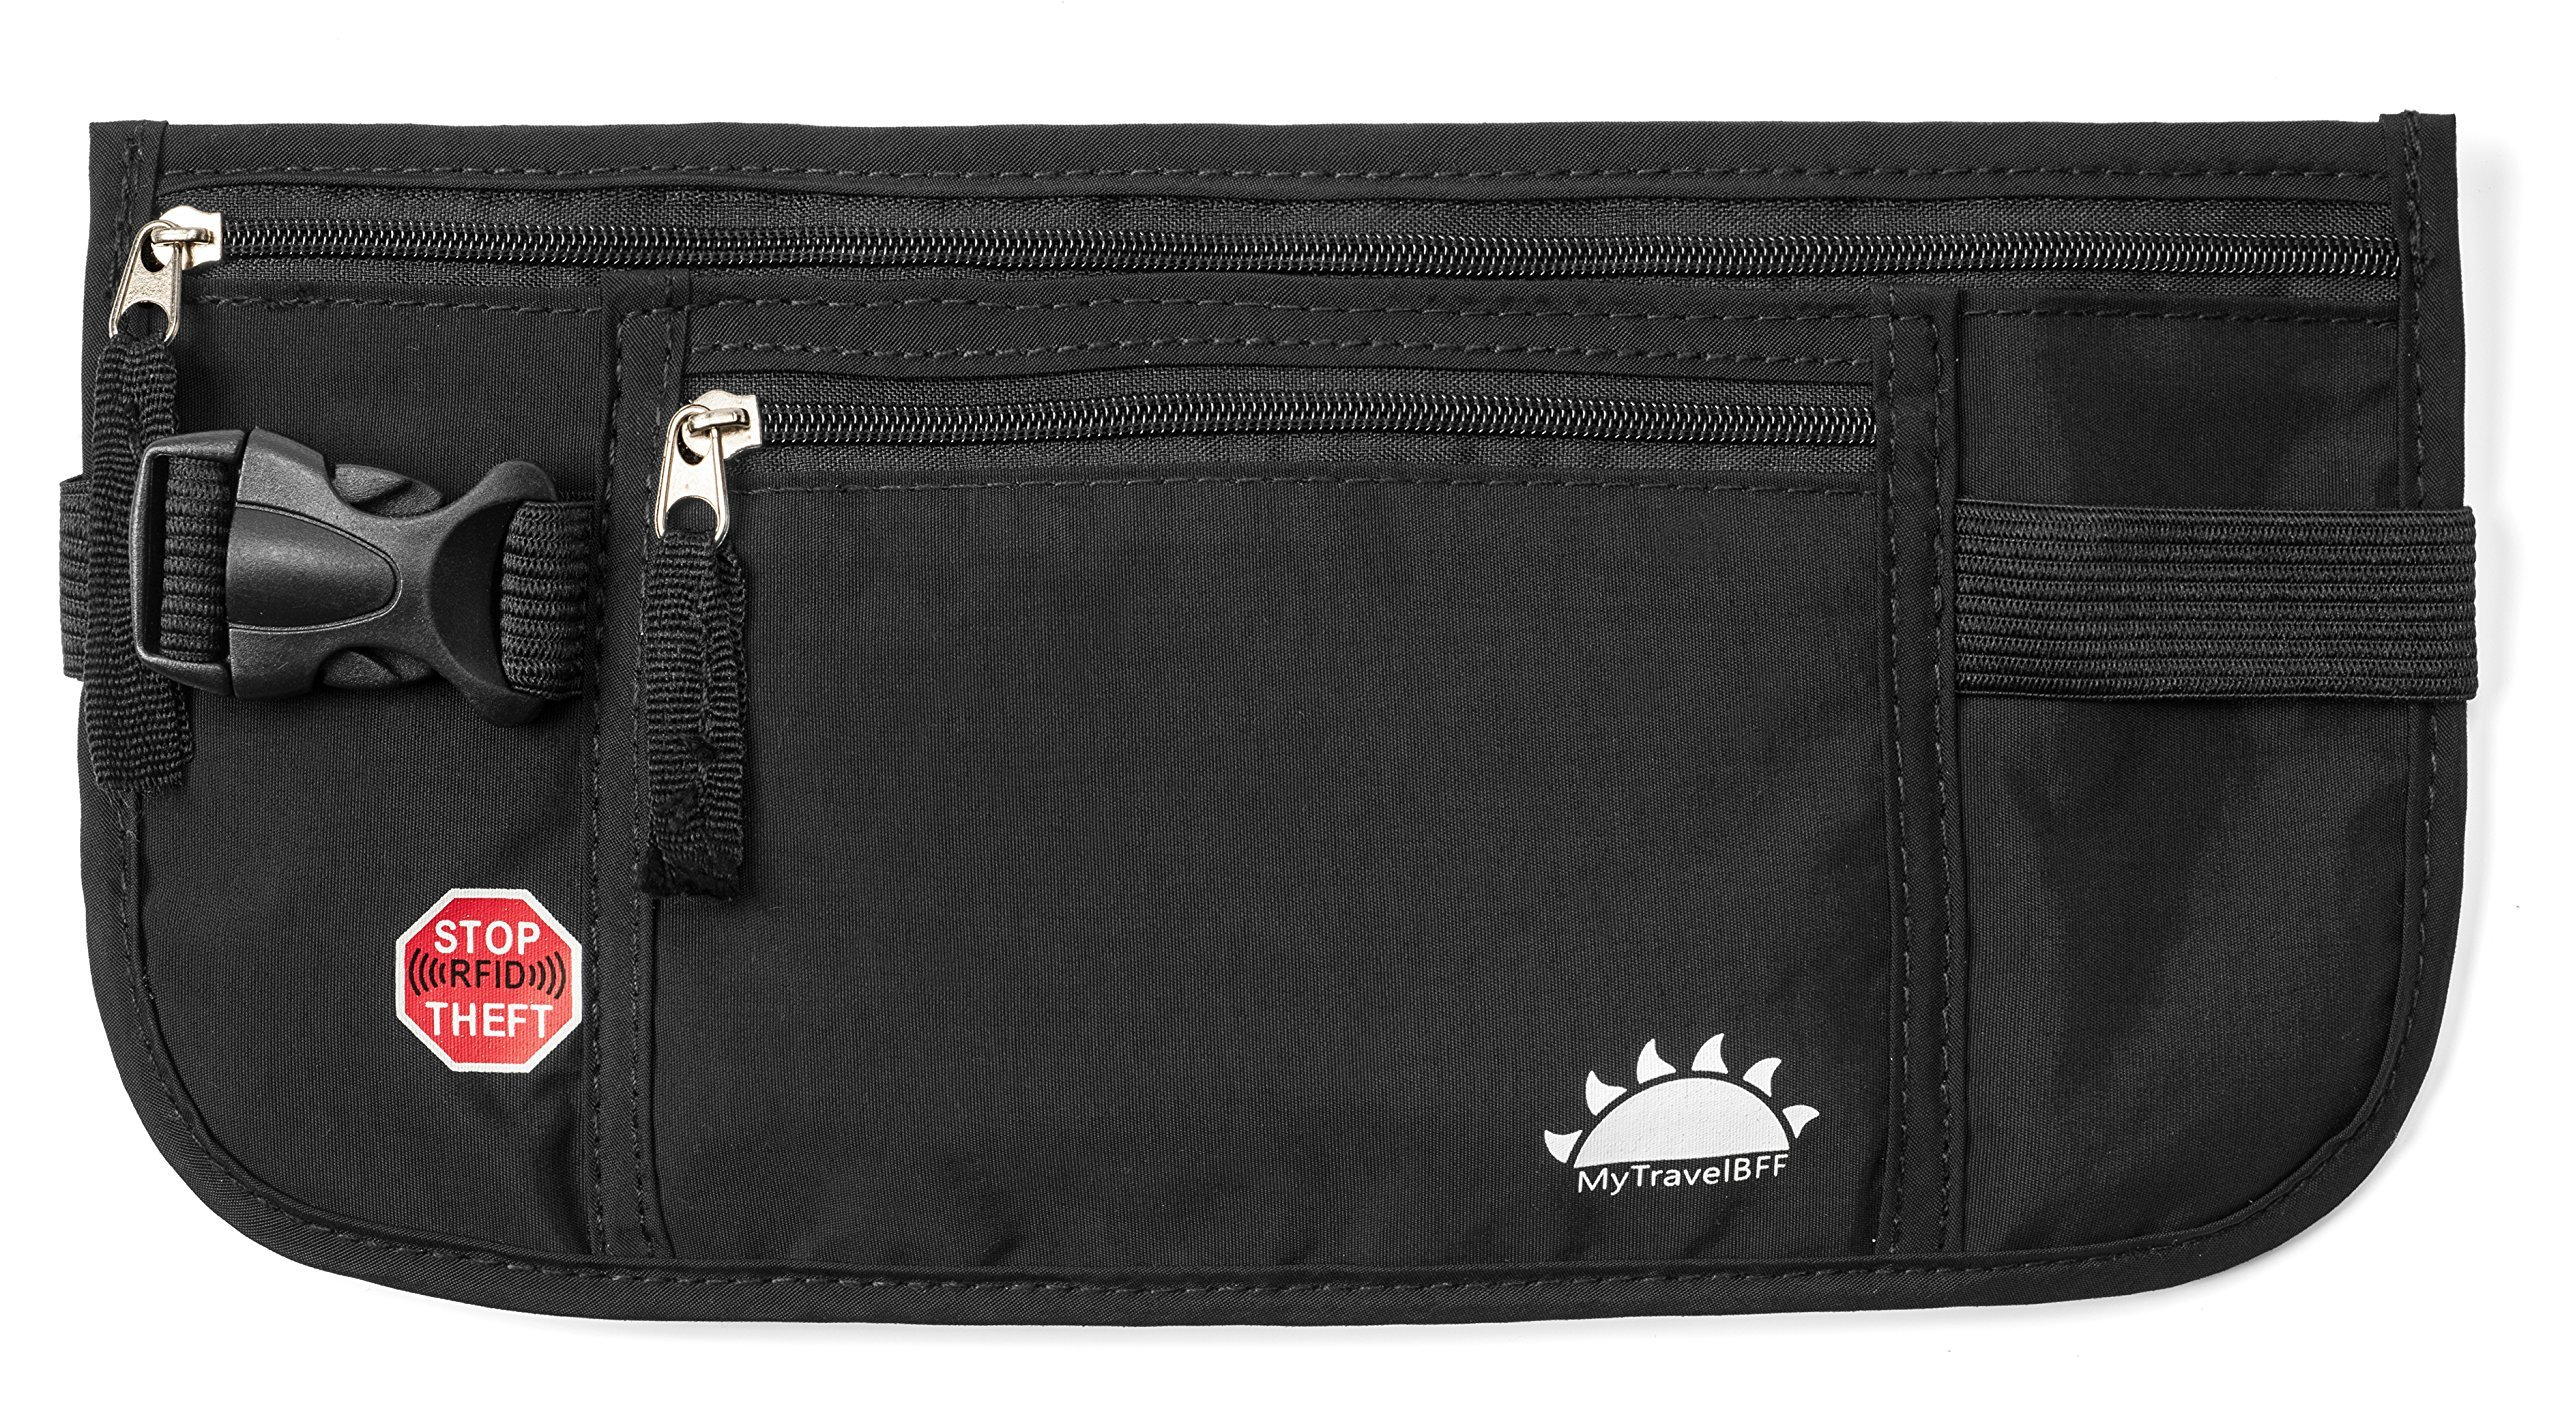 RFID Blocking Money Belt for Travel by MyTravelBFF, Keep Your Passport Hidden! by MyTravelBFF (Image #1)